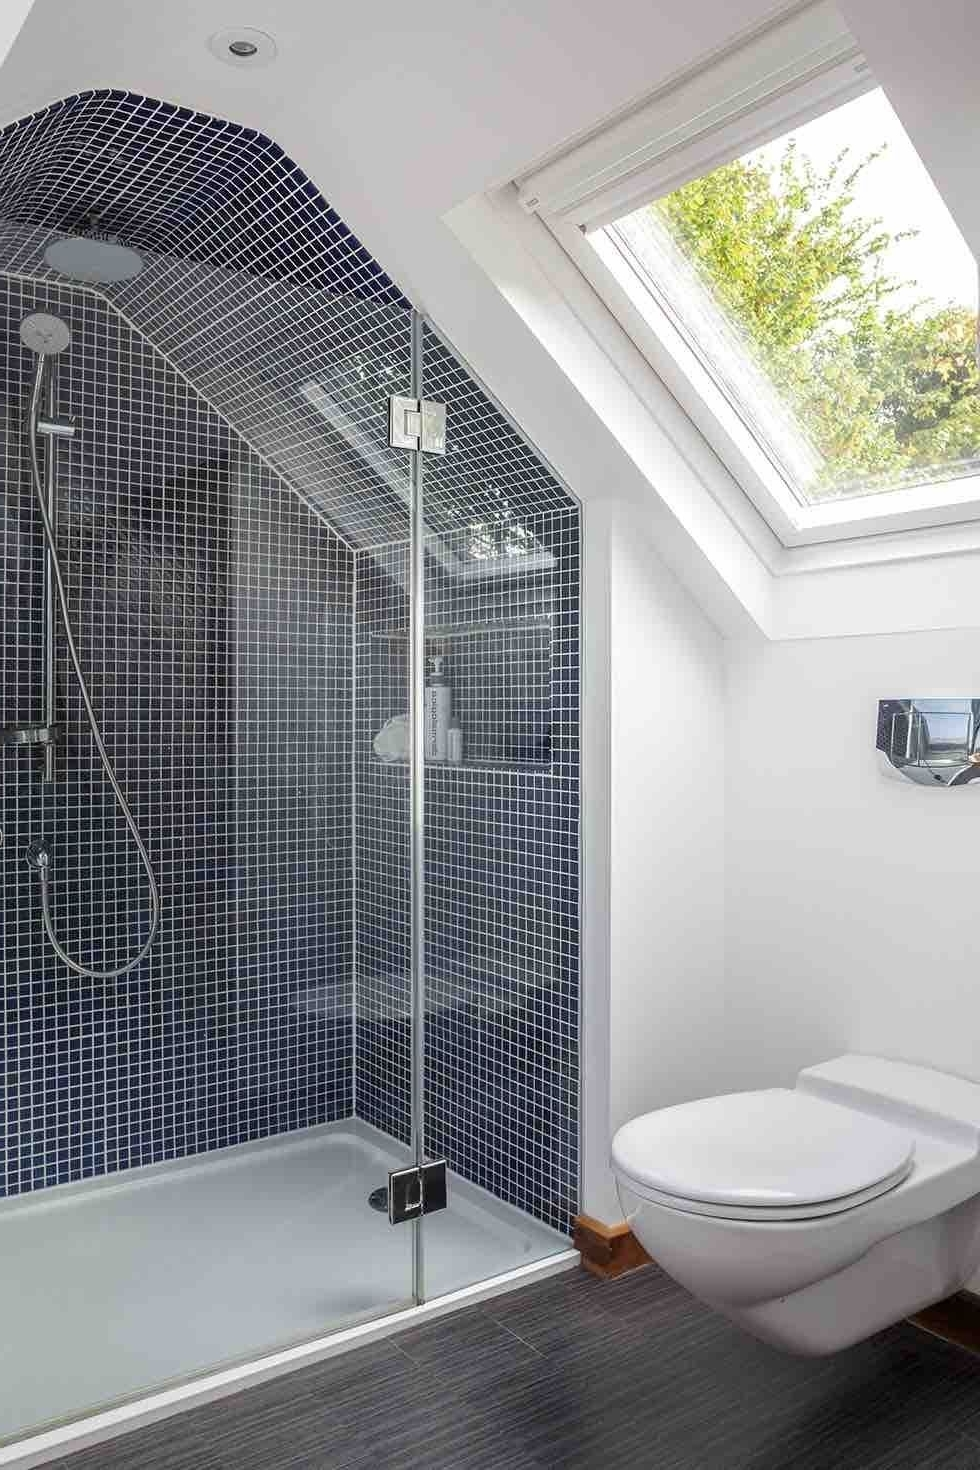 Bathrooms Pitched Roof Decor Bathrooms Pitched Roof Bathroom Pitched Roof Bathroom